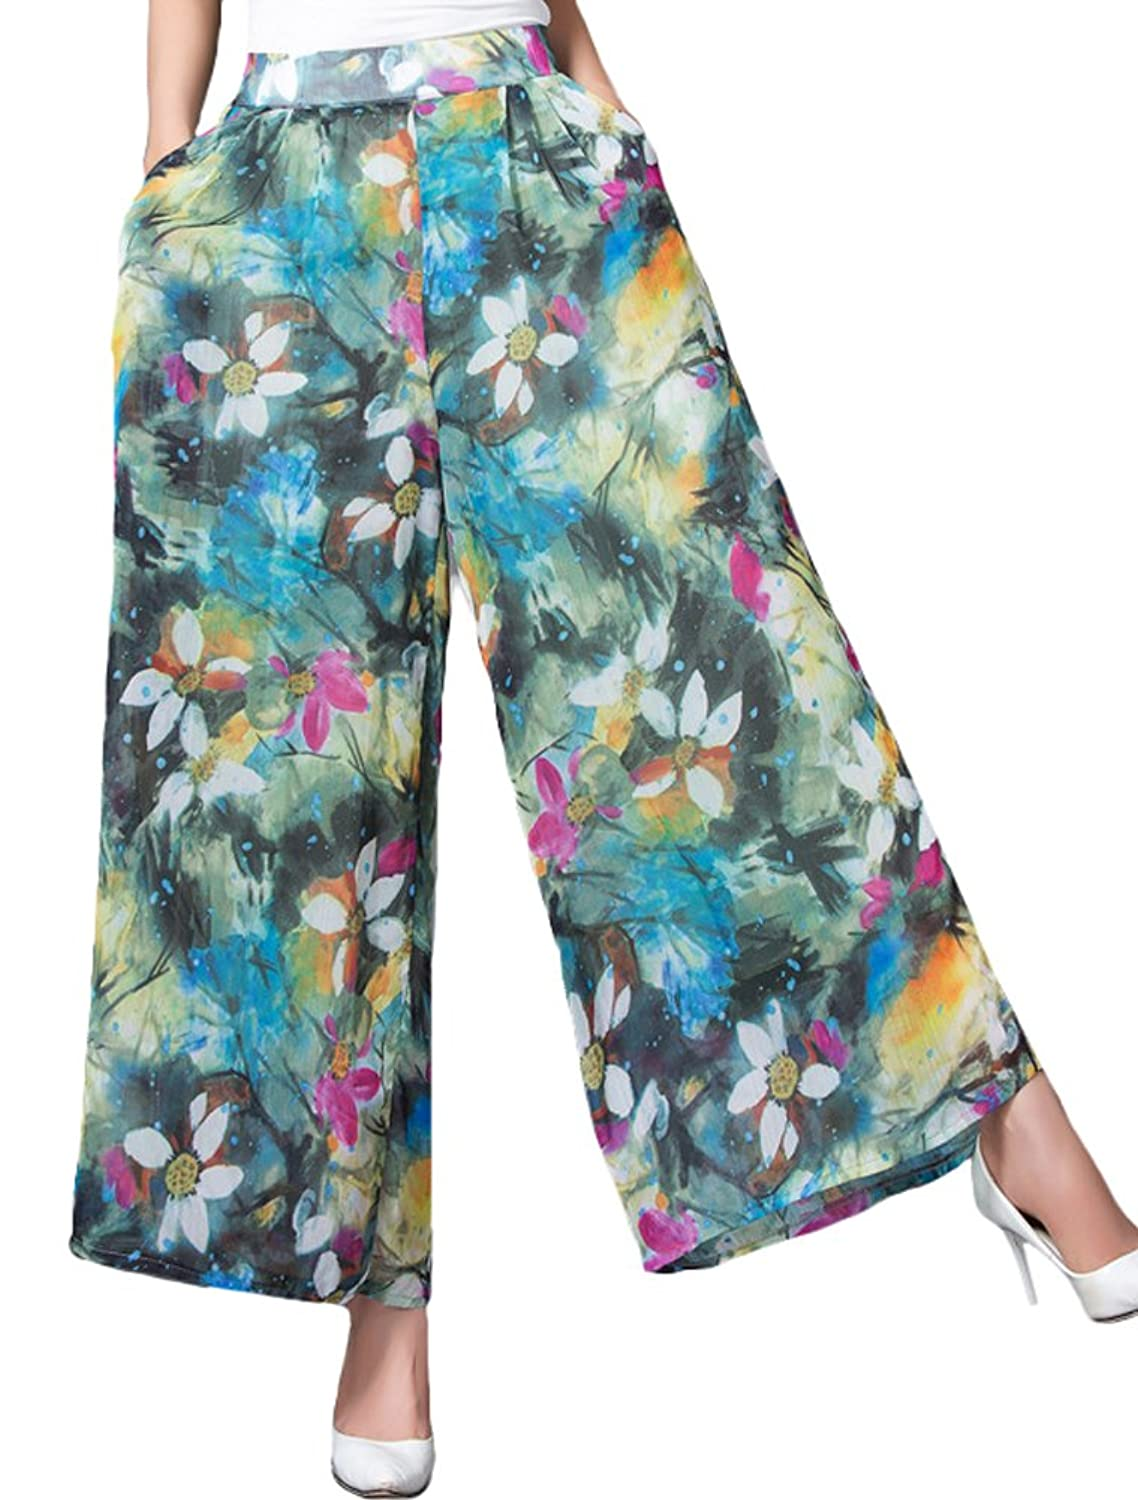 Vintage High Waisted Trousers, Sailor Pants, Jeans Minibee Womens High Waist Chiffon Wide Leg Floral Printed Palazzo Pants $25.00 AT vintagedancer.com